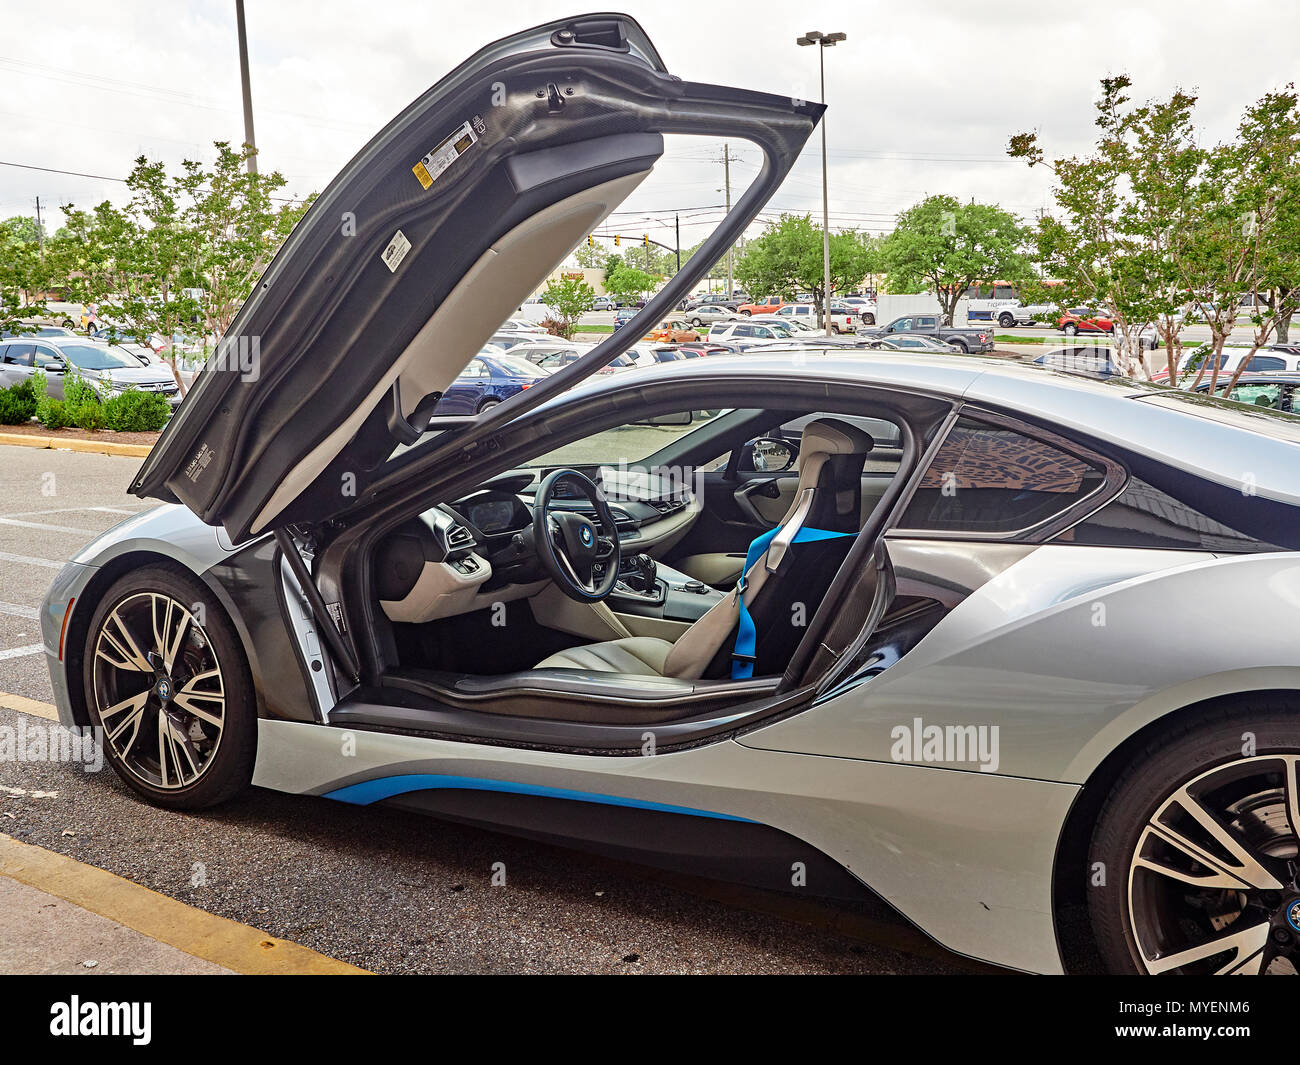 Bmw I8 Plug In Hybrid Super Car Or Sports Car Parked At The Curb